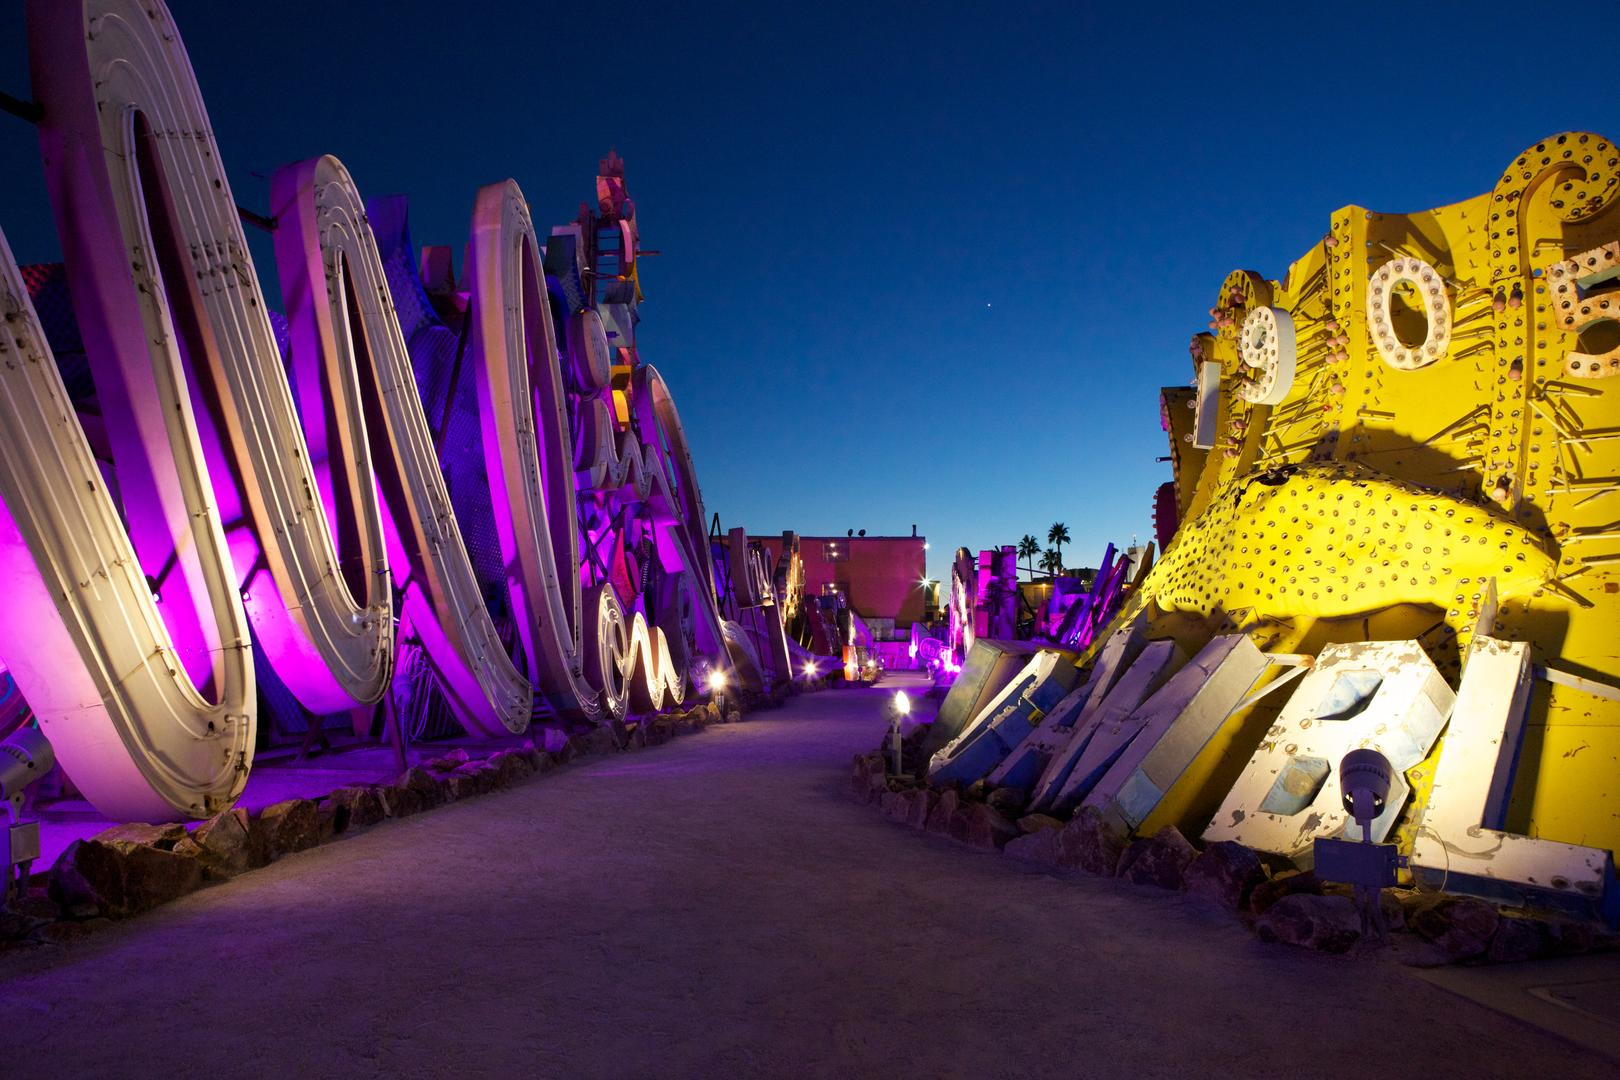 space at The Neon Museum